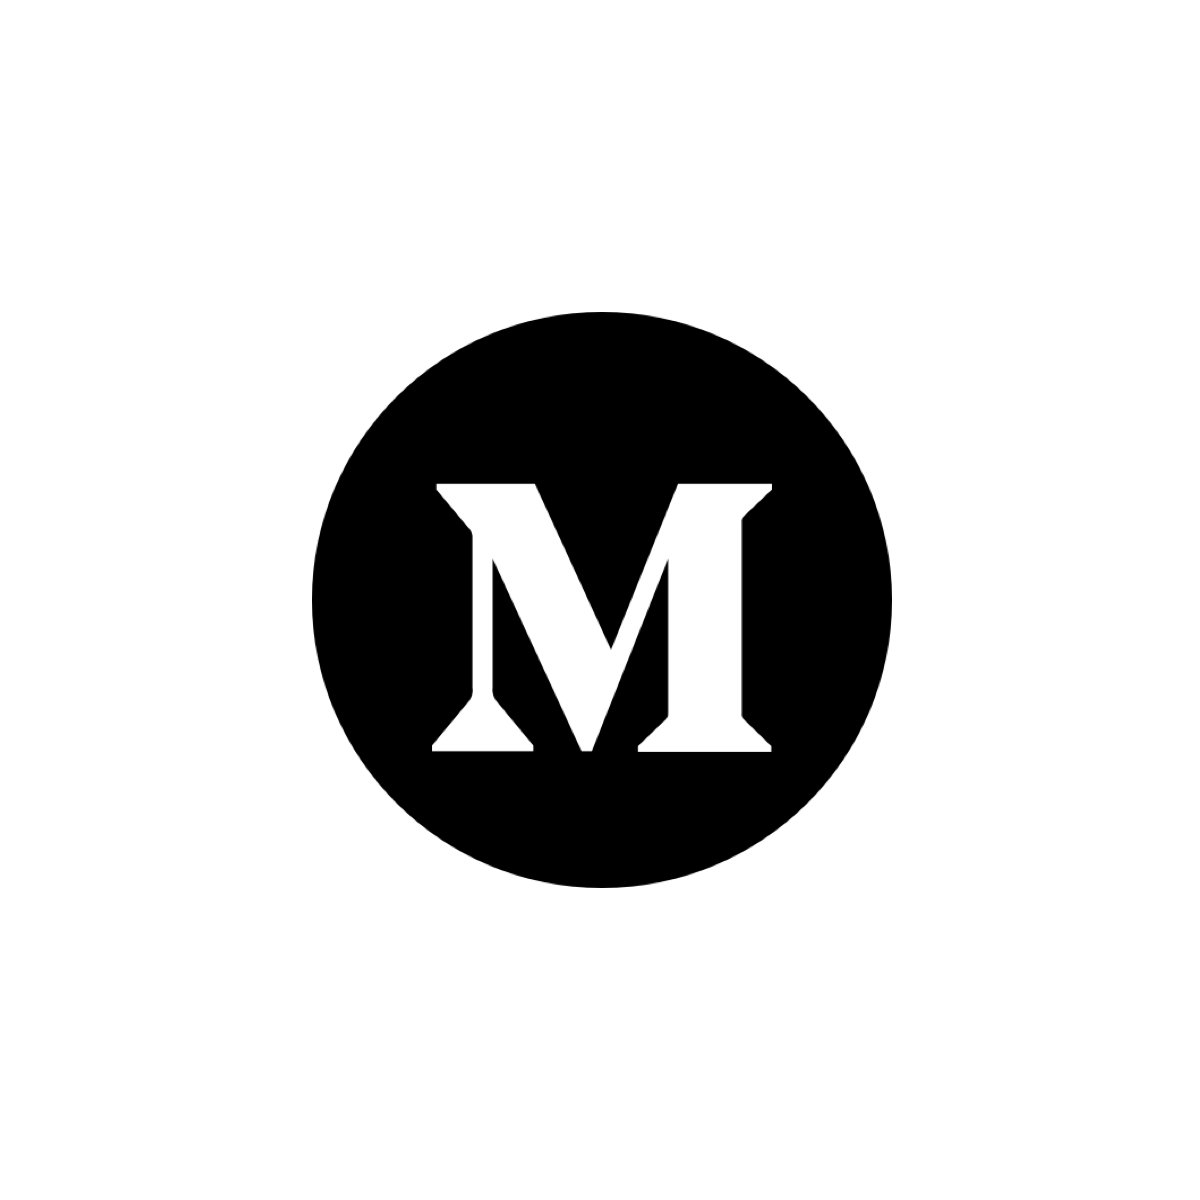 Photo of Medium icon